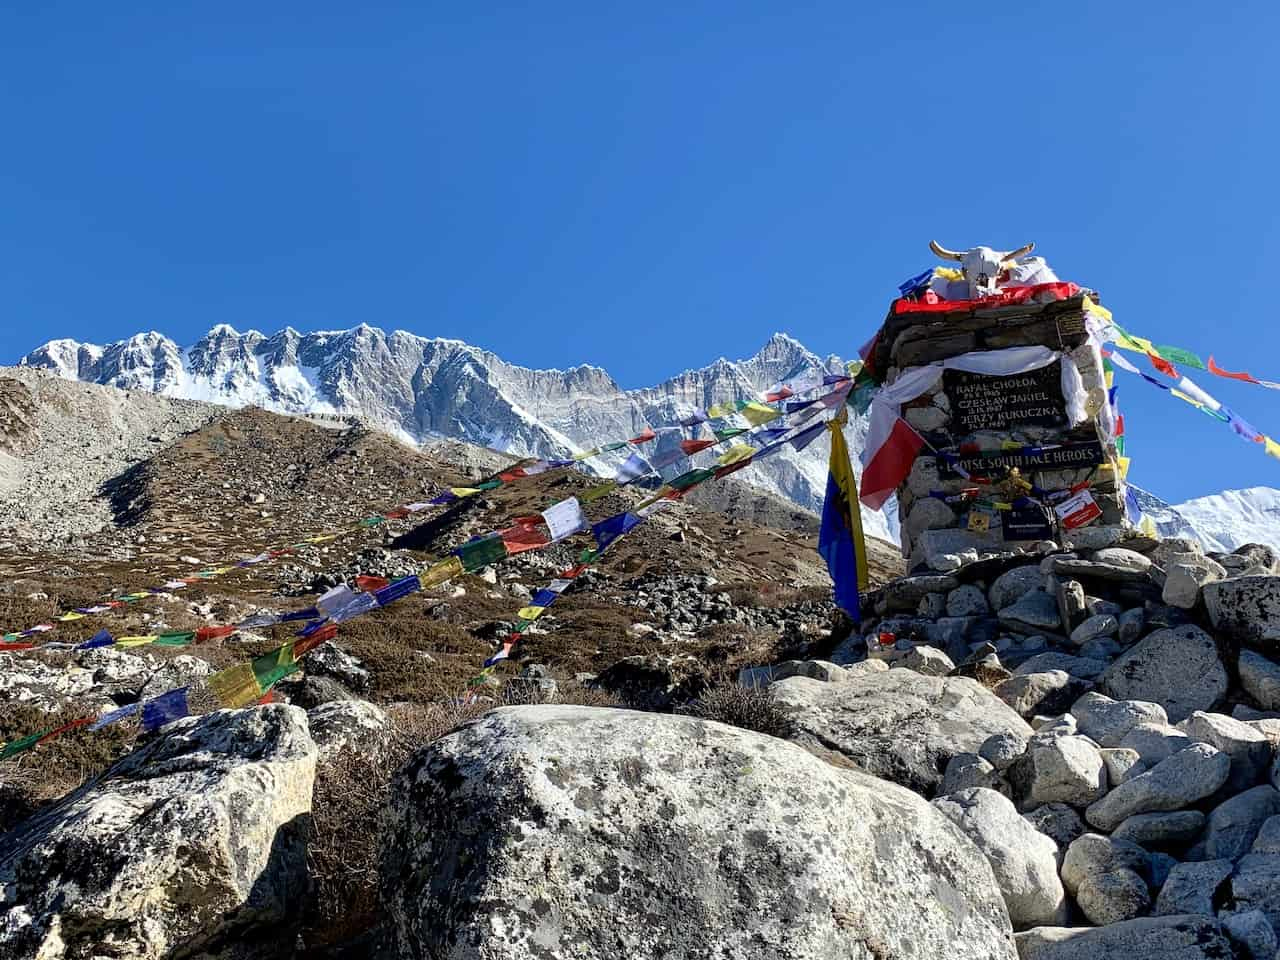 Lhotse South Face Memorial